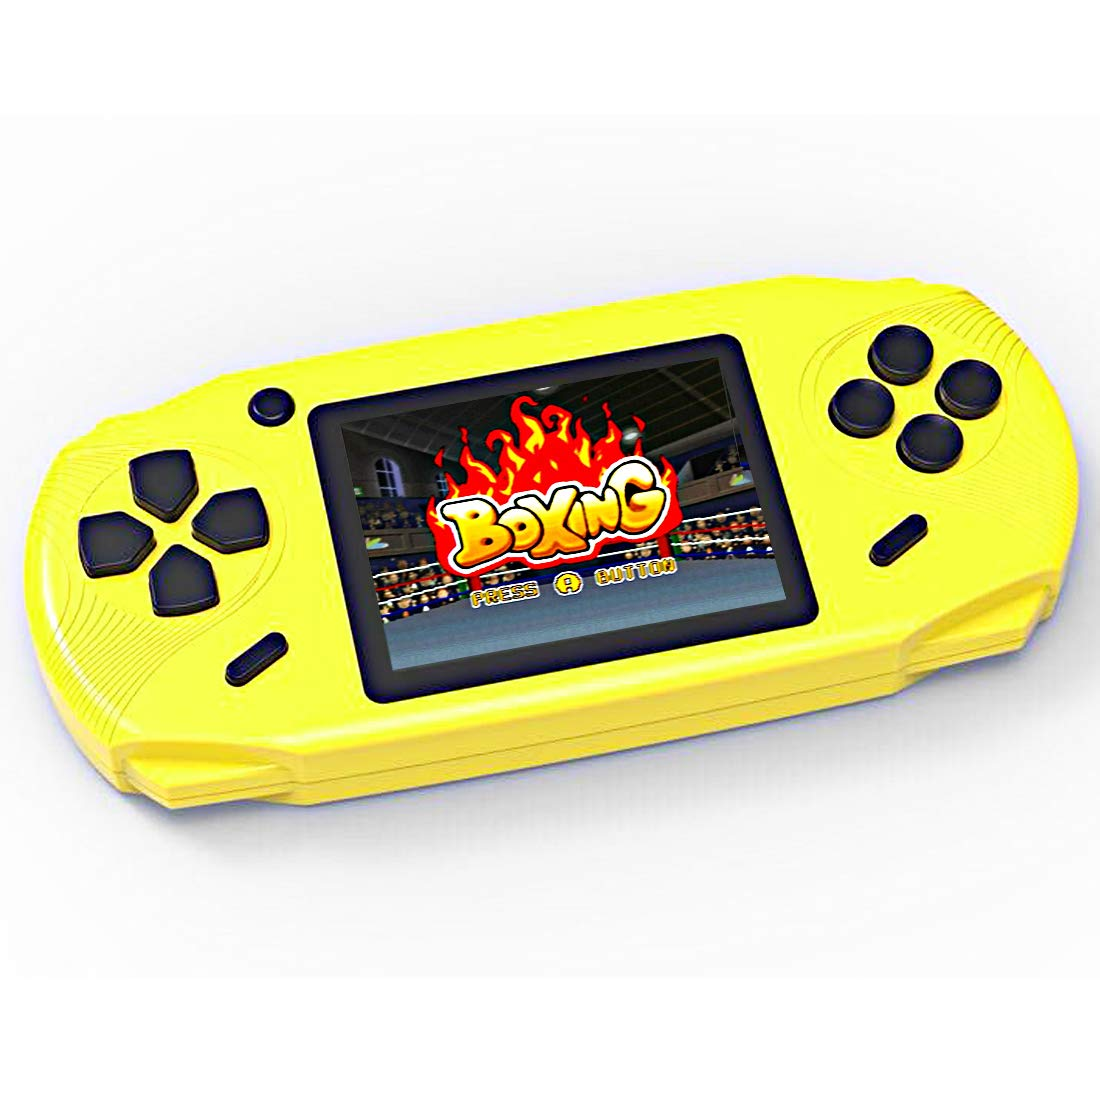 TEBIYOU Handheld Game Console, Built in 16 Bit100 HD Classic Video Games 3.0'' Large Screen Seniors Electronic Handheld Games Player Birthday Gift for Children Adults (Yellow) by TEBIYOU (Image #1)